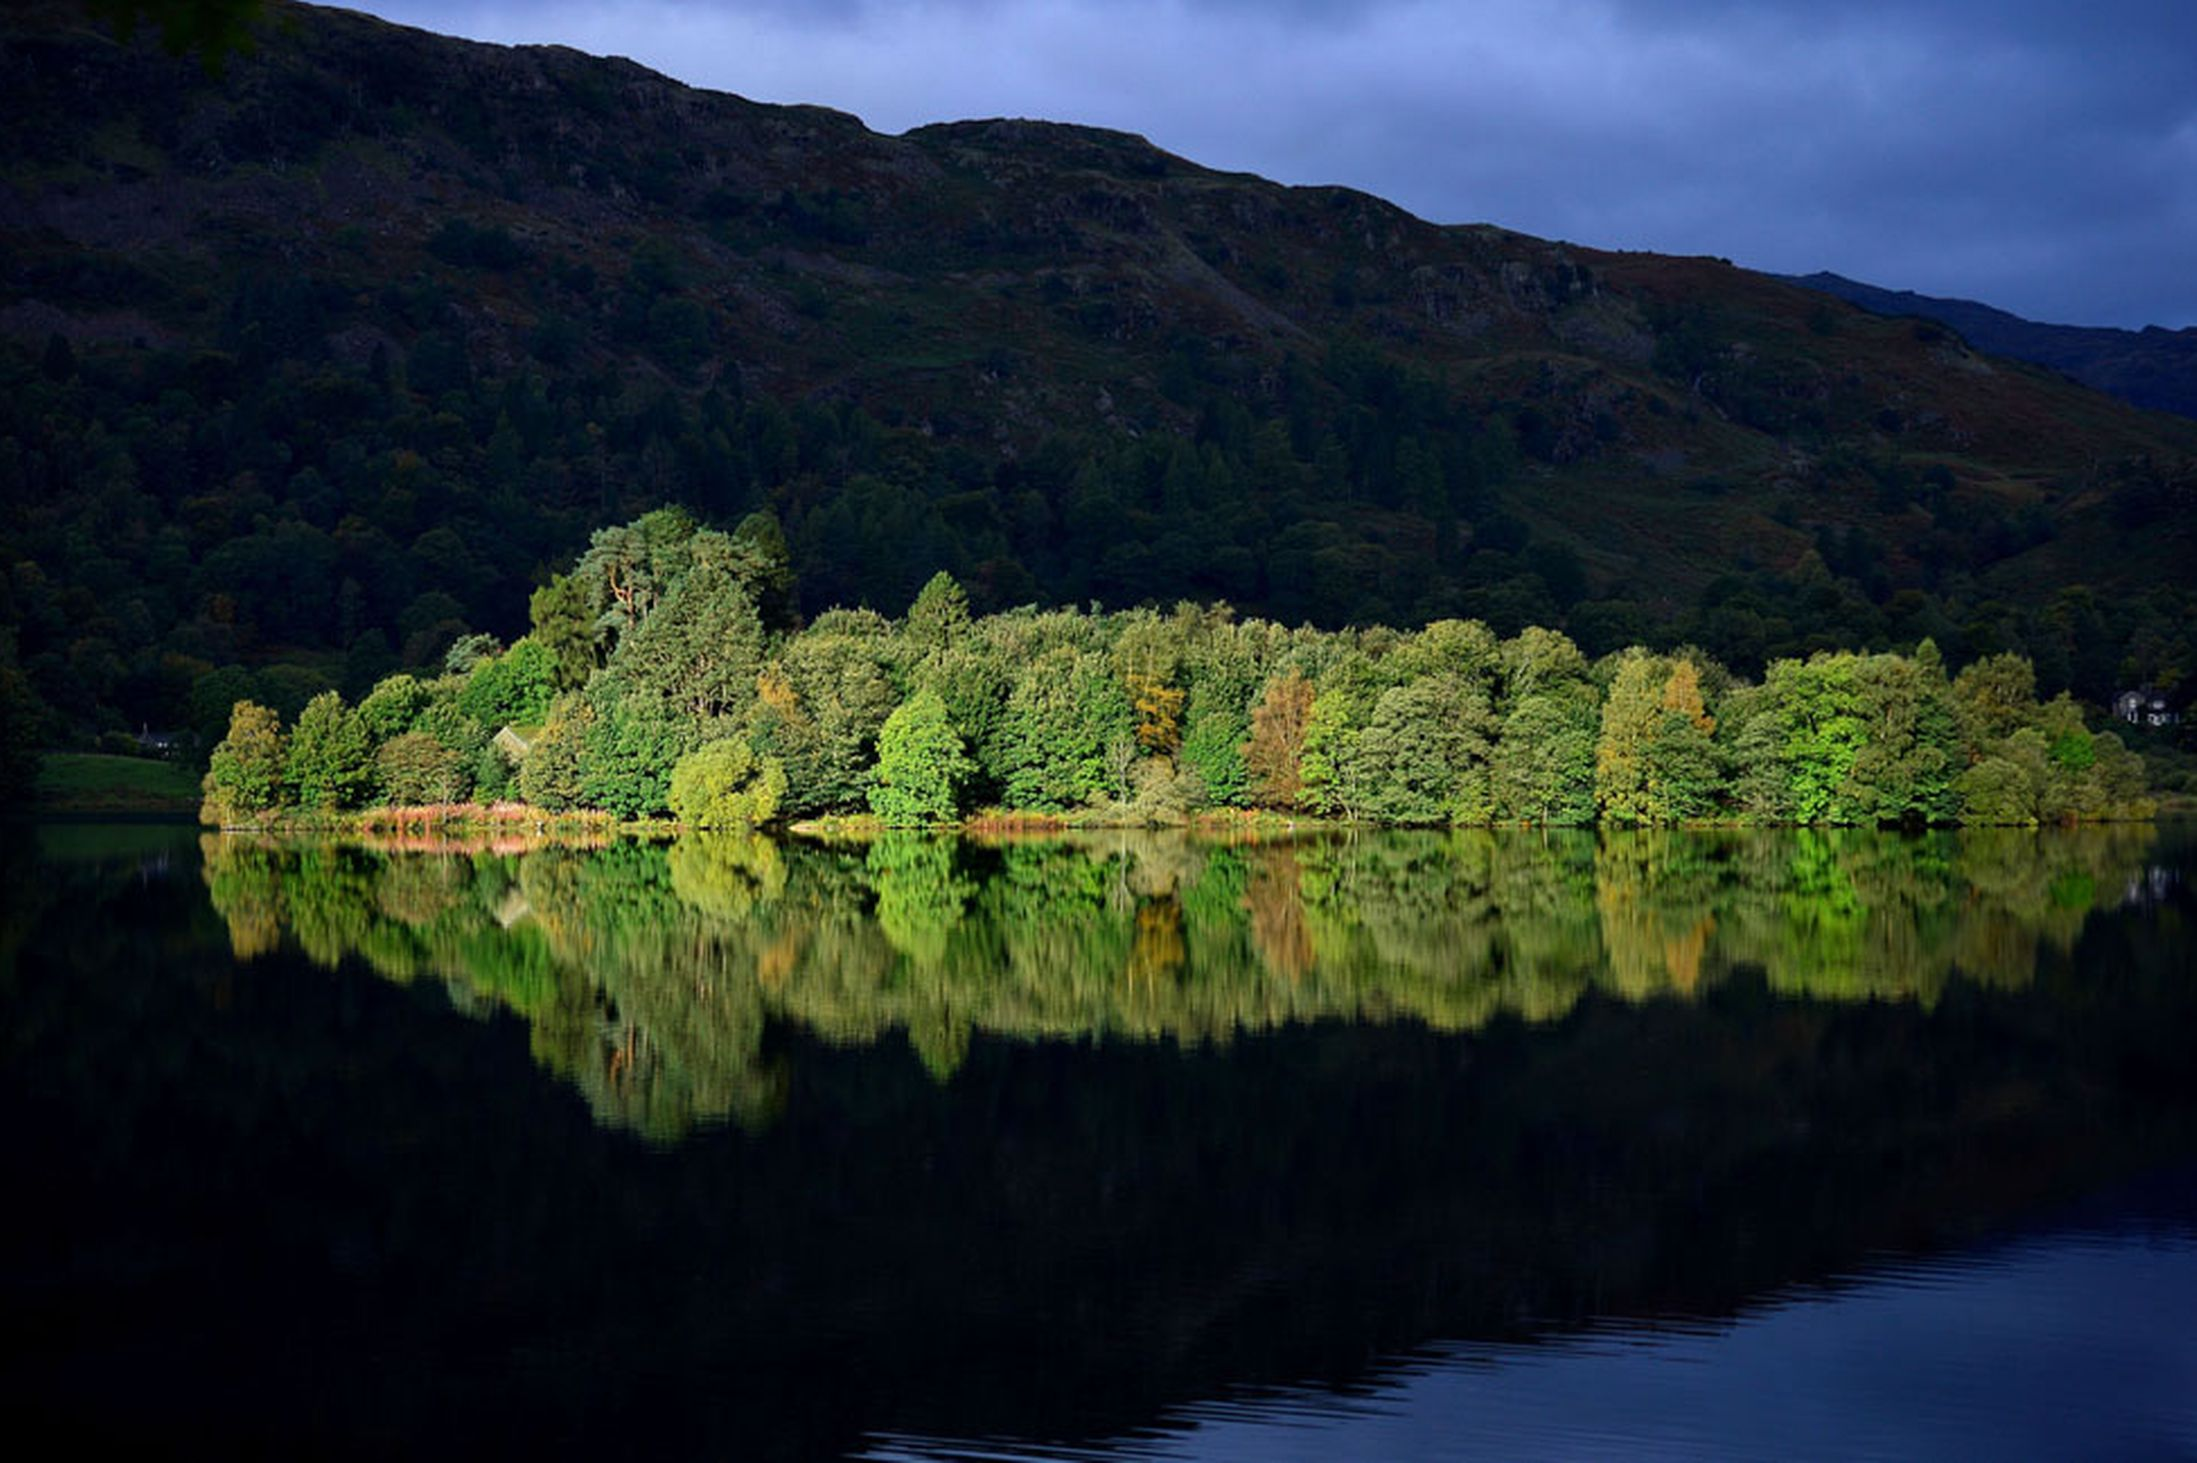 The-Autumn-sun-lights-up-an-island-on-Grasmere-Lake-in-the-Lake-District-Cumbria-6t-October-2641161